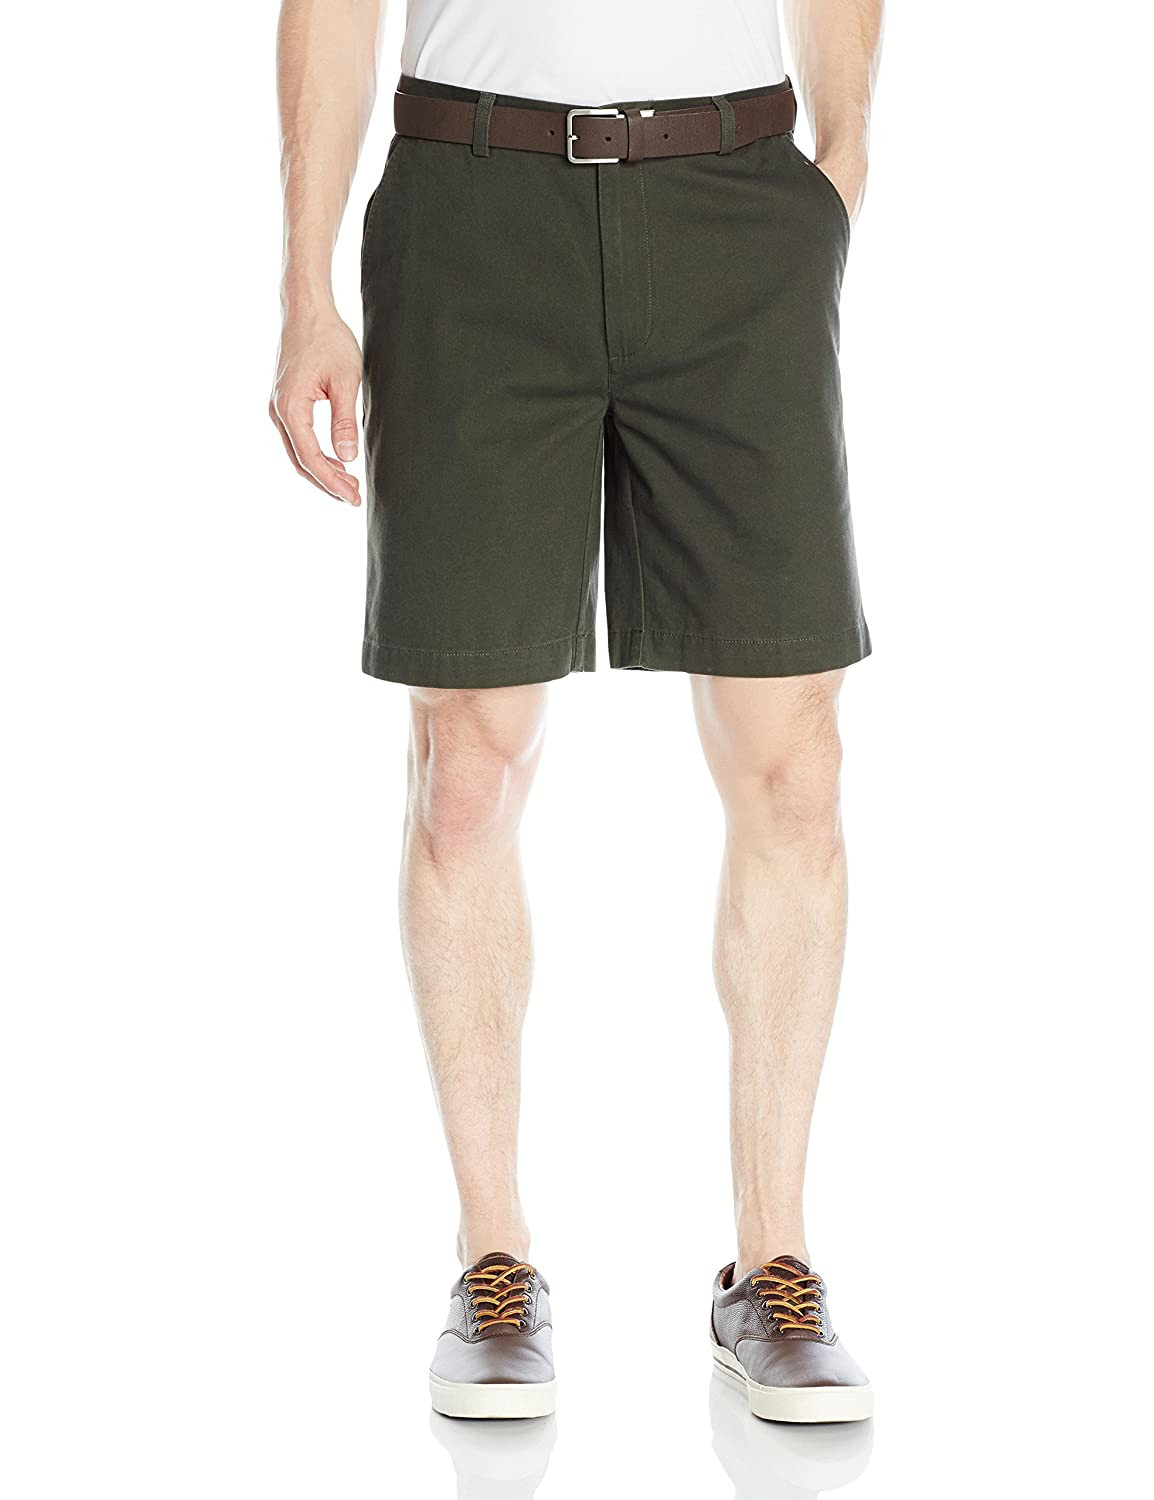 Amazon Essentials Men's Classic-Fit Short F16AE60002